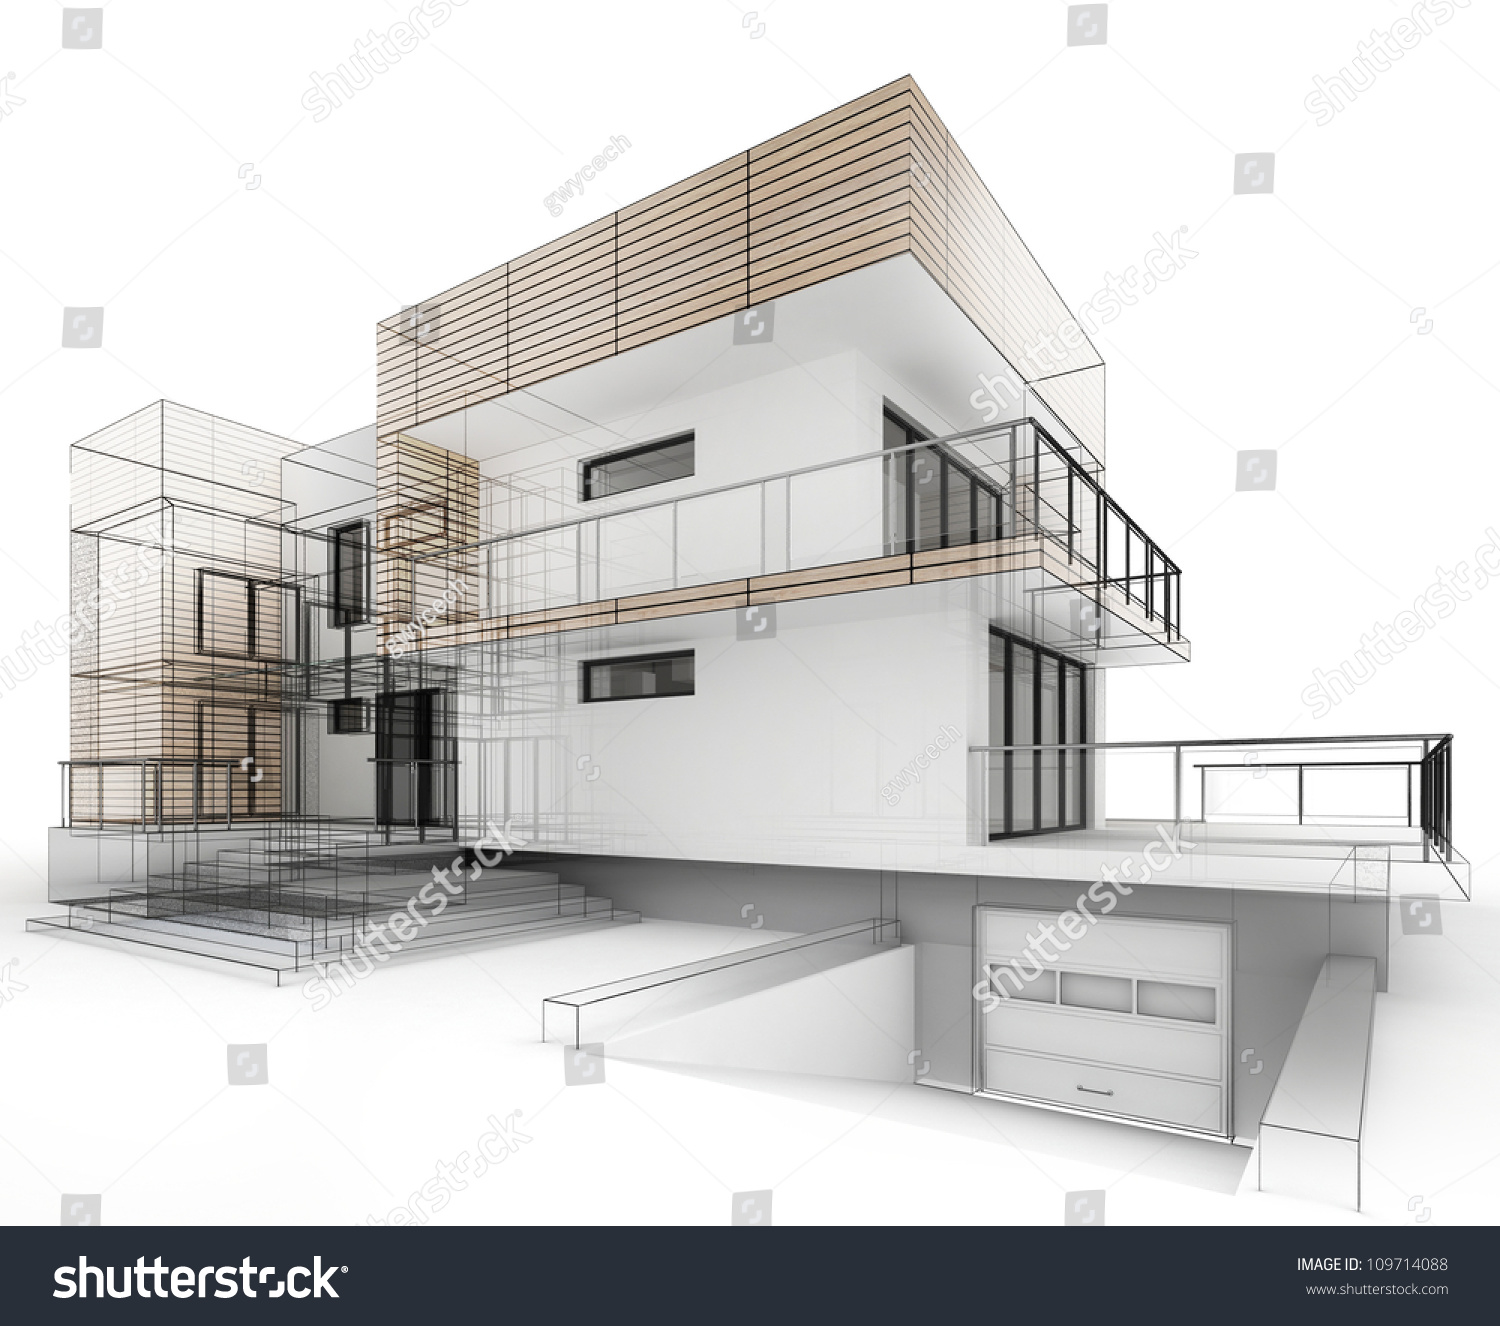 House design progress architecture drawing and for Architecture and design